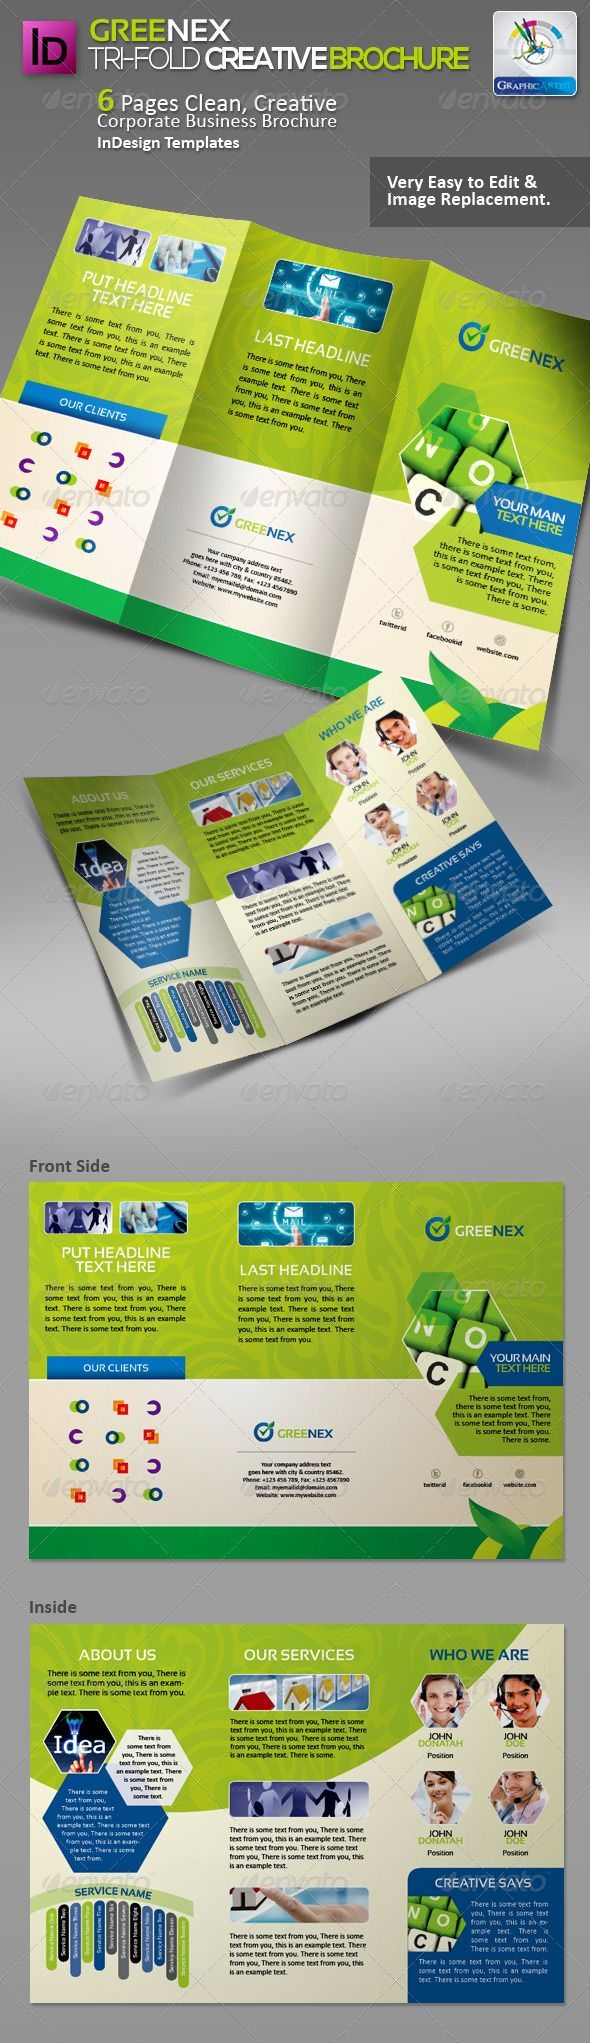 Greenex Tri-fold Creative Brochure  #GraphicRiver         Greenex Tri-fold Clean Corporate Business Brochure for multipurpose use,  quality design, Clean, professional and modern brochure template save your time & cost. - size: 210×297mm + bleed & Trim Mark  - Layered INDD (Including Vector Elements & Icons)  - CMYK and Fully Resizable & Vector   Features > This template is ideal for any business presentation.  > The style is sober, both dynamic and readable.  > Sample texts and images are easy to replace.  > The template contain Layered INDD & Vector EPS files (Elements & Icons).  > You can change everything, if the colors or effects are not appropriate.  > Picture Images html links inside in help file.  Used Fonts & Images Used all fonts & picture images Name & Available Links is included in the Support .txt File in Main Files. If you like, please rate this…  Also Available   01_Greenex Business Card :  graphicriver /item/benxgreen-corporate-business-cards/1437489?WT.ac=portfolio&WT.seg_1=portfolio&WT.z_author=GraphicArtist  02_Greenex PowerPoint Templates :  graphicriver /item/greenex-creative-powerpoint-templates/3654165?WT.ac=portfolio&WT.seg_1=portfolio&WT.z_author=GraphicArtist  03_Greenex Business Proposal :  graphicriver /item/greenex-clean-creative-project-proposal/3668069?WT.ac=portfolio&WT.seg_1=portfolio&WT.z_author=GraphicArtist  04_Greenex Bi-Fold Brochure :  graphicriver /item/greenex-bifold-creative-brochure/3680190?WT.ac=portfolio&WT.seg_1=portfolio&WT.z_author=GraphicArtist  05_Greenex Tri-Fold Brochure :  graphicriver /item/greenex-trifold-creative-brochure/3691055?WT.ac=portfolio&WT.seg_1=portfolio&WT.z_author=GraphicArtist  06_Greenex Sinage Pack :  graphicriver /item/greenex-sinage-solution-pack/3695862?WT.ac=portfolio&WT.seg_1=portfolio&WT.z_author=GraphicArtist  07_Greenex Business Flyer/Ads :  graphicriver /item/greenex-corporate-business-flyerads/3702902?WT.ac=portfolio&WT.seg_1=portfolio&WT.z_author=GraphicArtist  08_Greenex CD Packages P